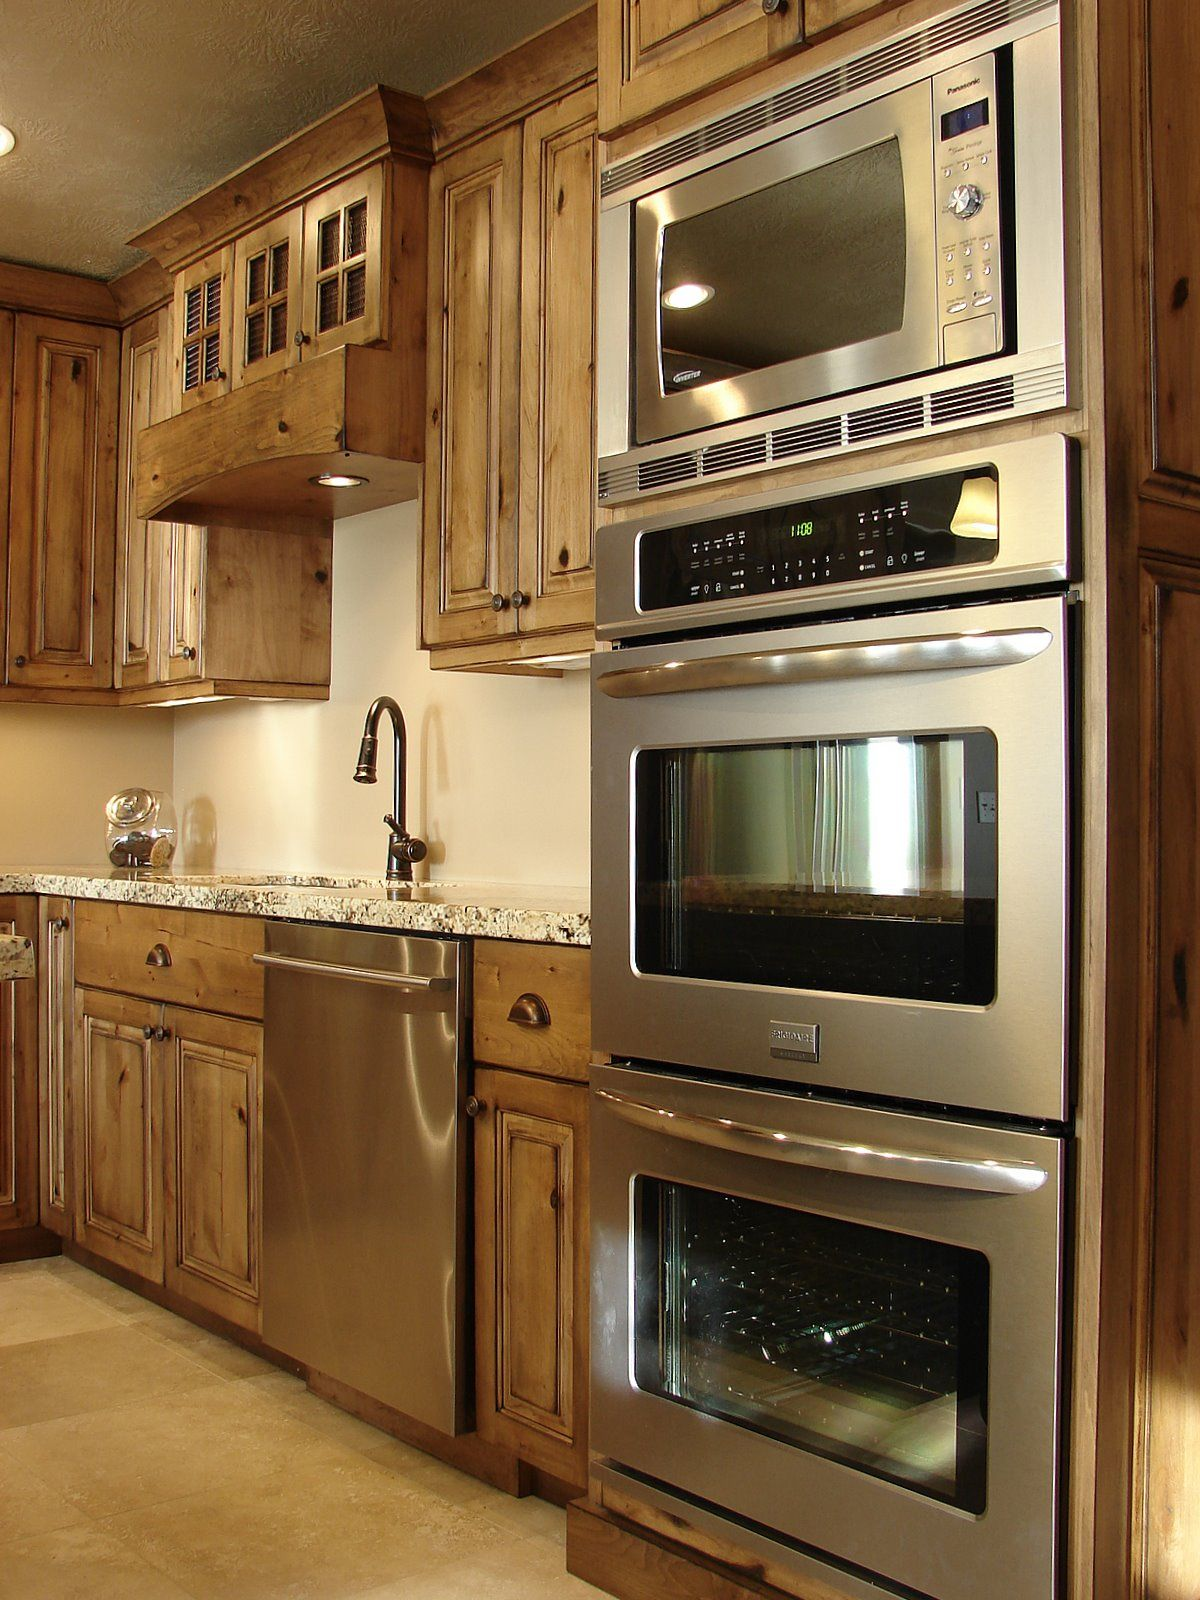 double oven and microwave and alder+kitchen+cabinets | Rustic ...